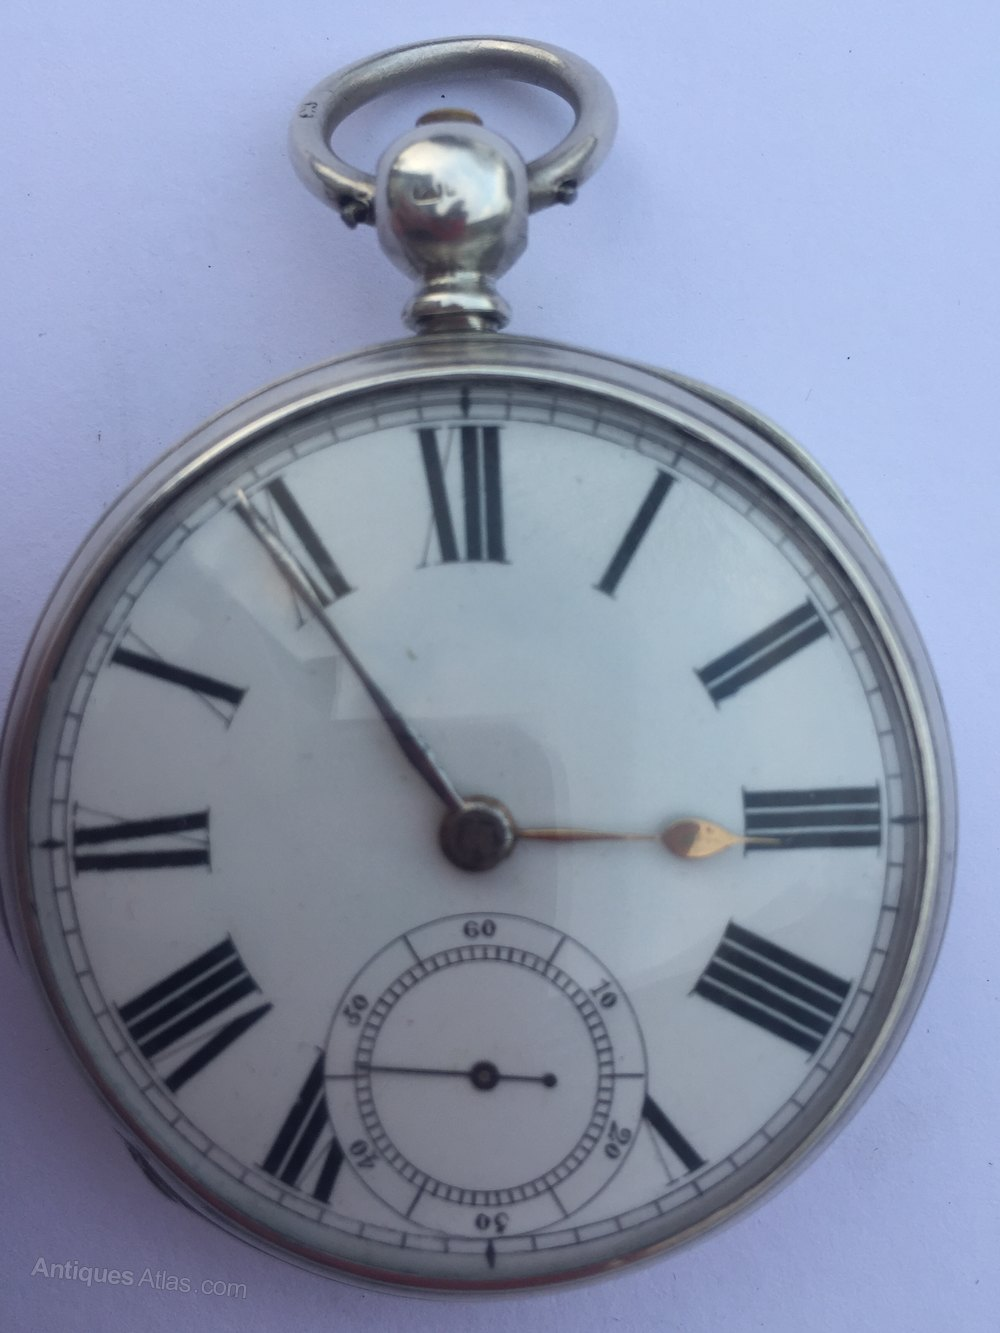 Cleaning vintage pocket watches